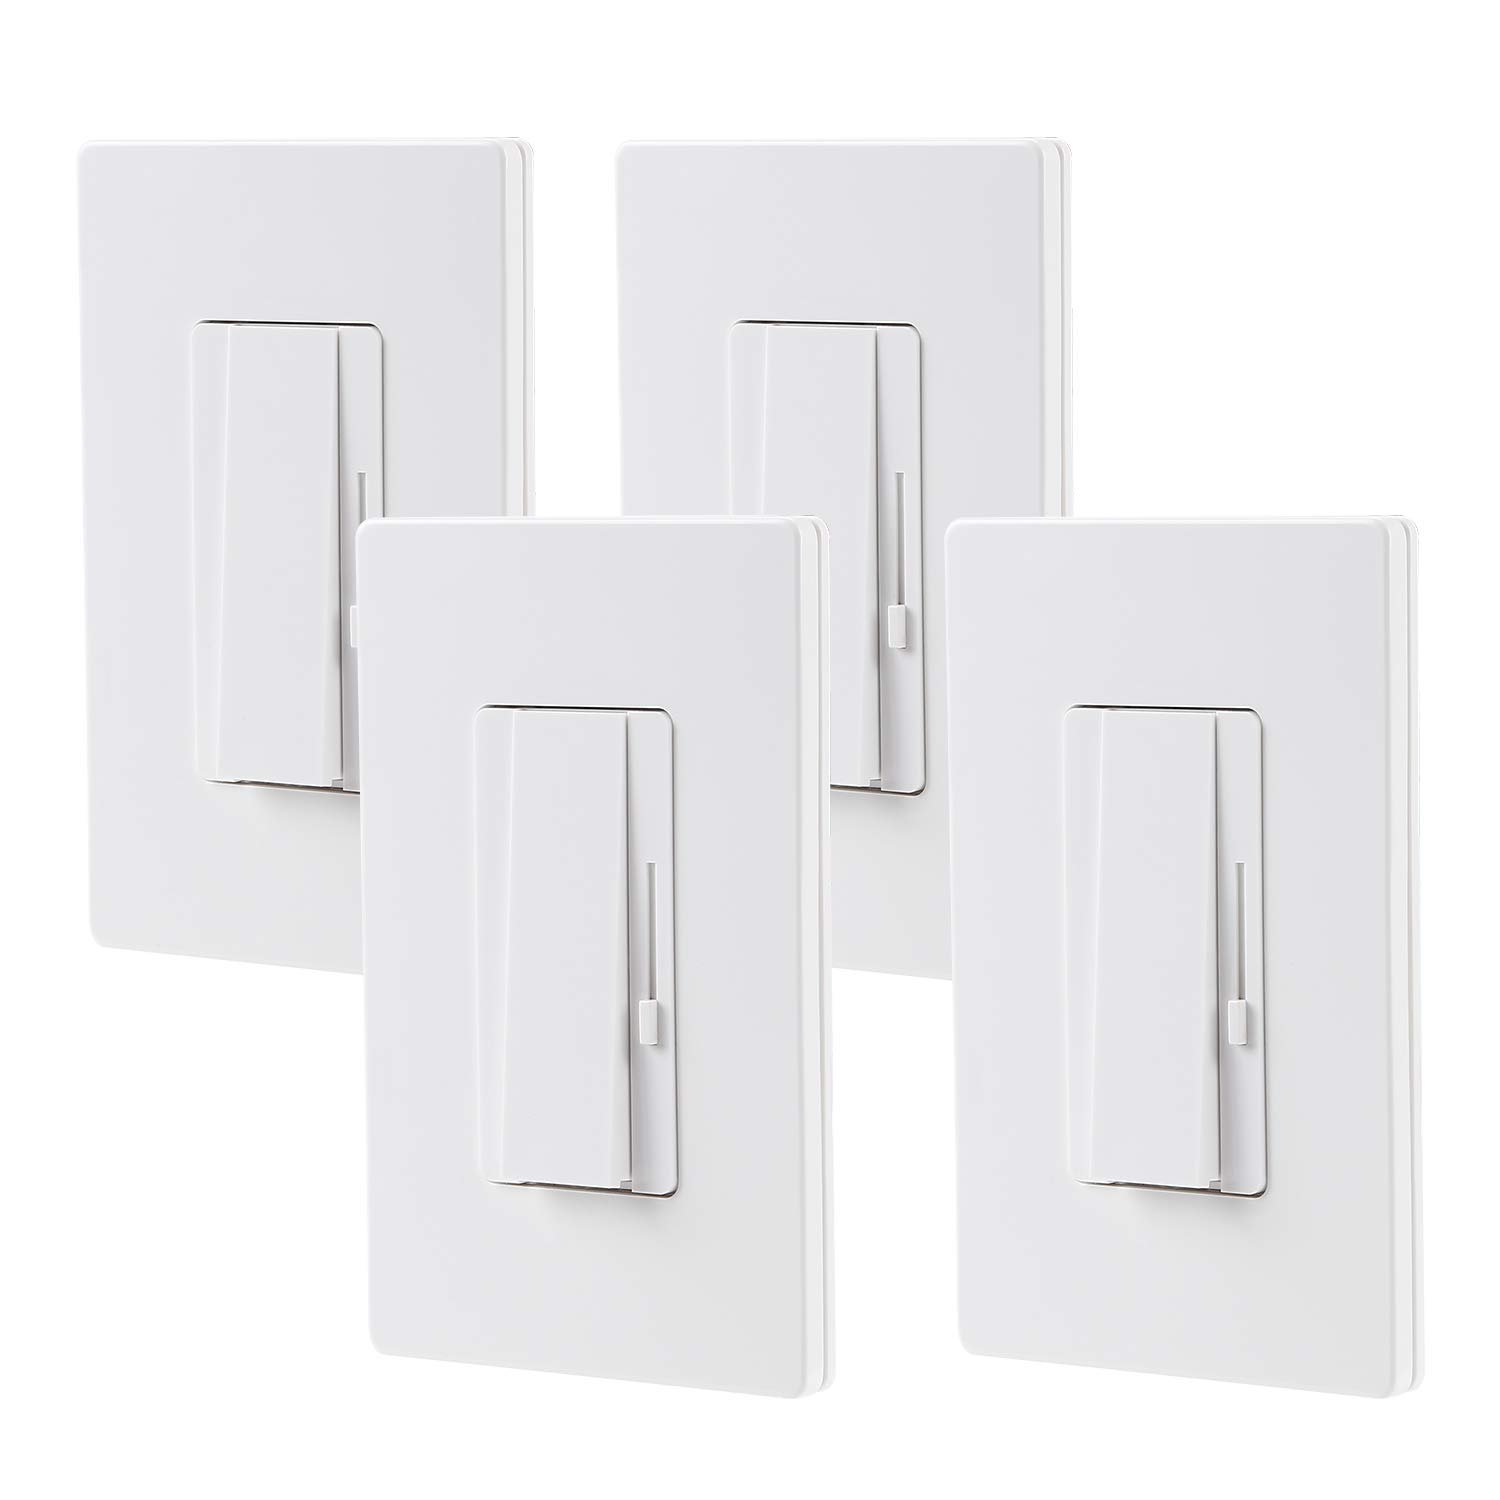 TORCHSTAR 4 PACK 3-Way/Single Pole Dimmer Switch, Suit for 150W LED/CFL 600W Incandescent/Halogen, Both Single Pole/3-Way Applications Available, Wall Plate Included